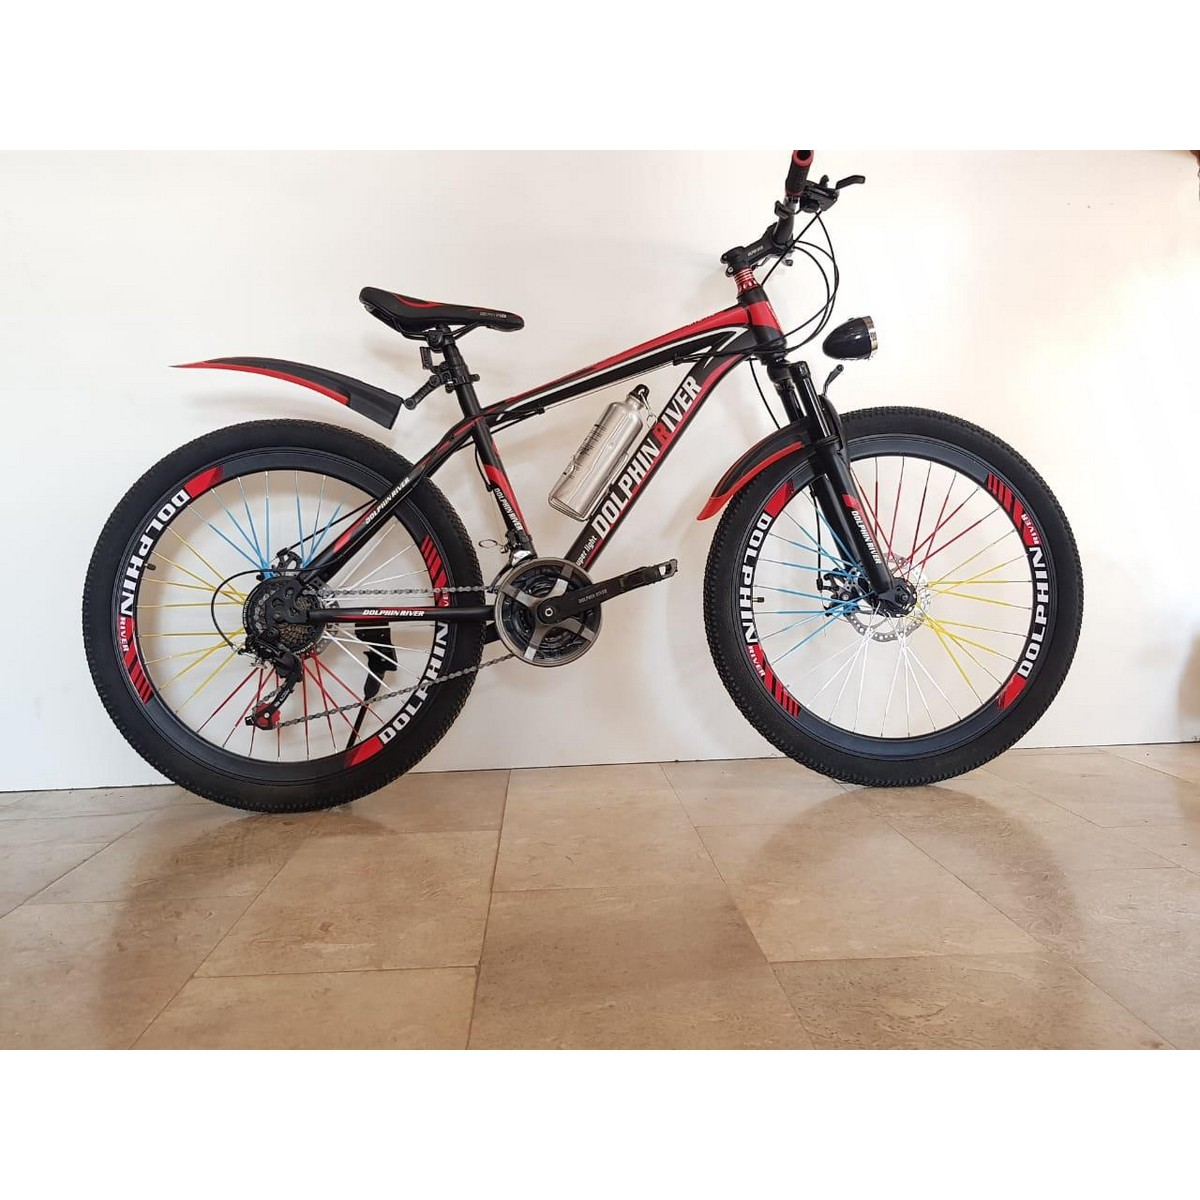 New Dolphin mountain bike 26 Inch racing edition bicycle for Adults new edition